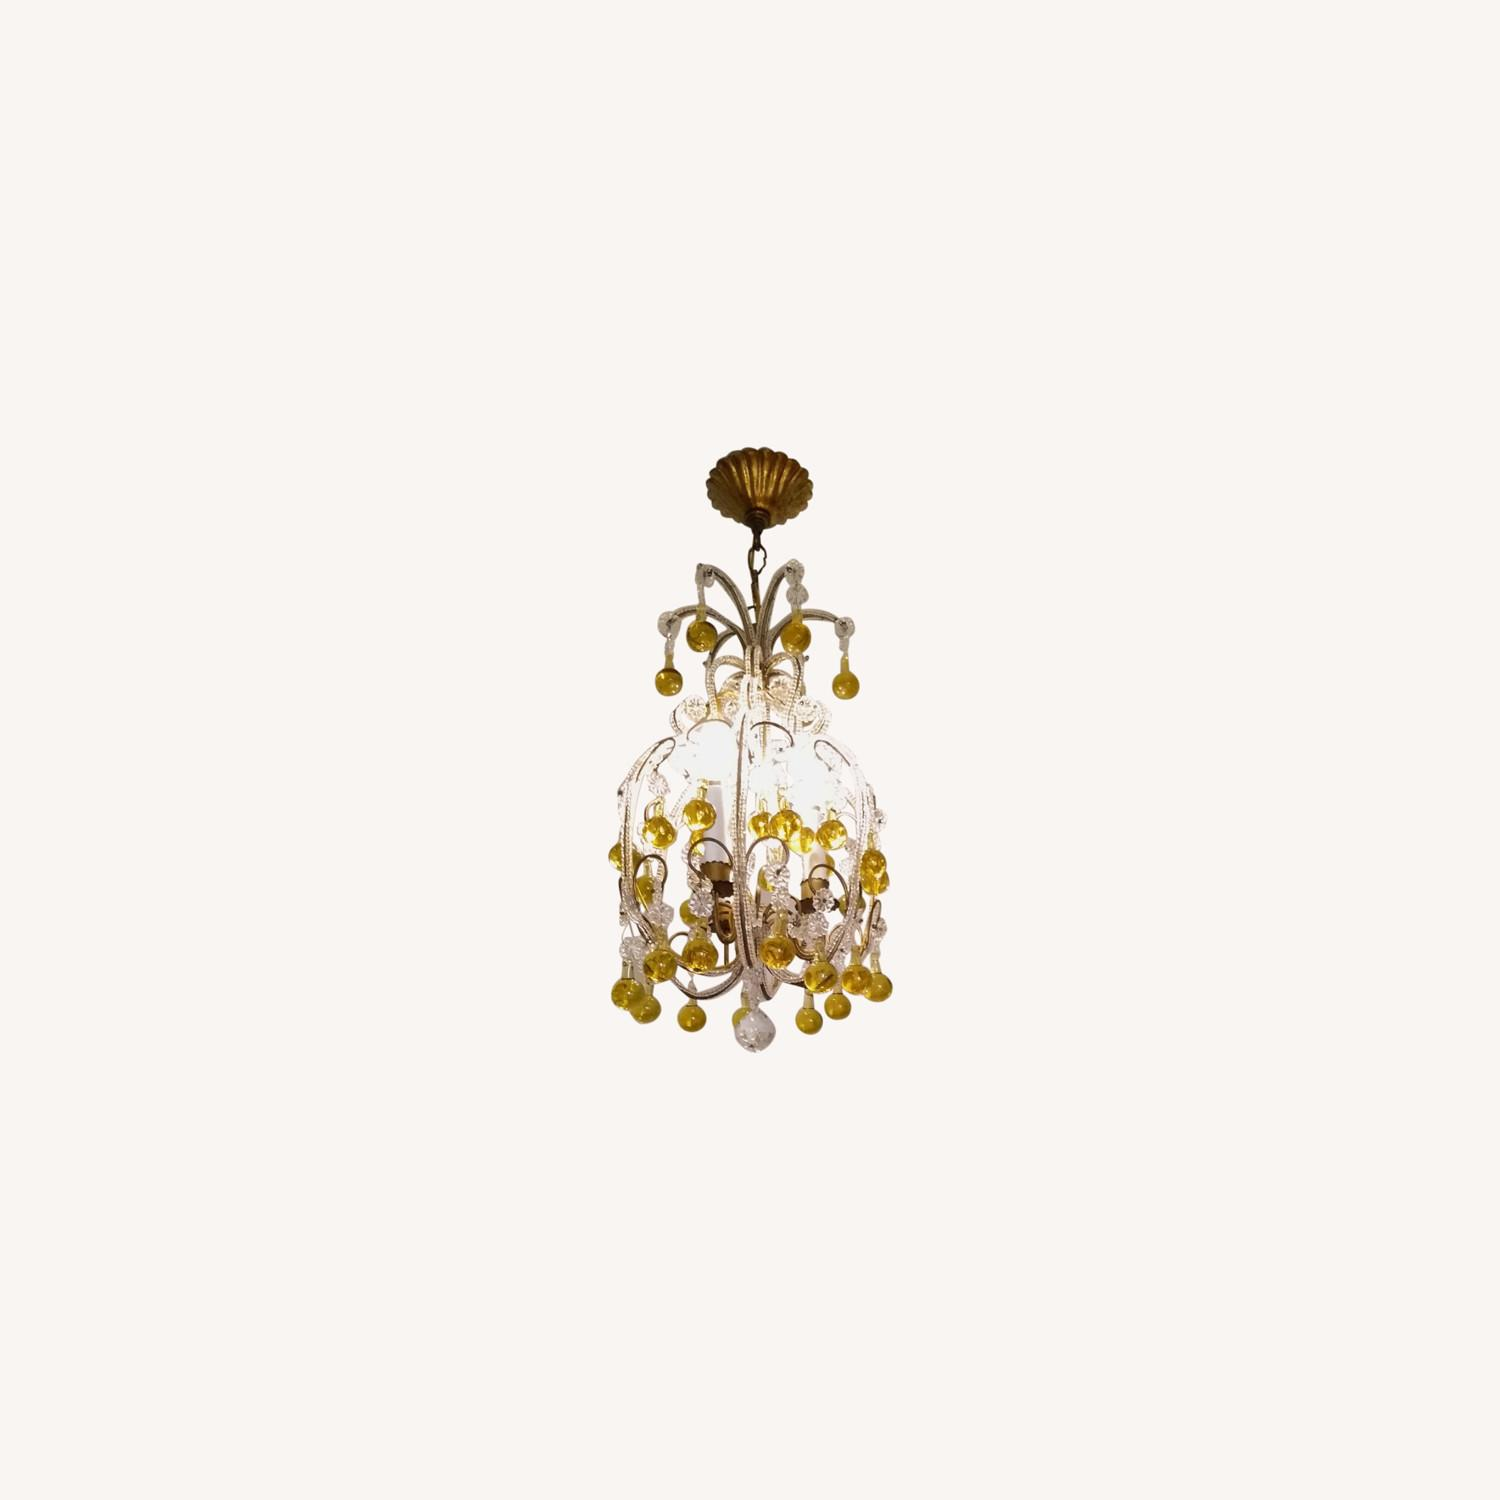 Vintage French Chandelier, Murano Drops - image-0